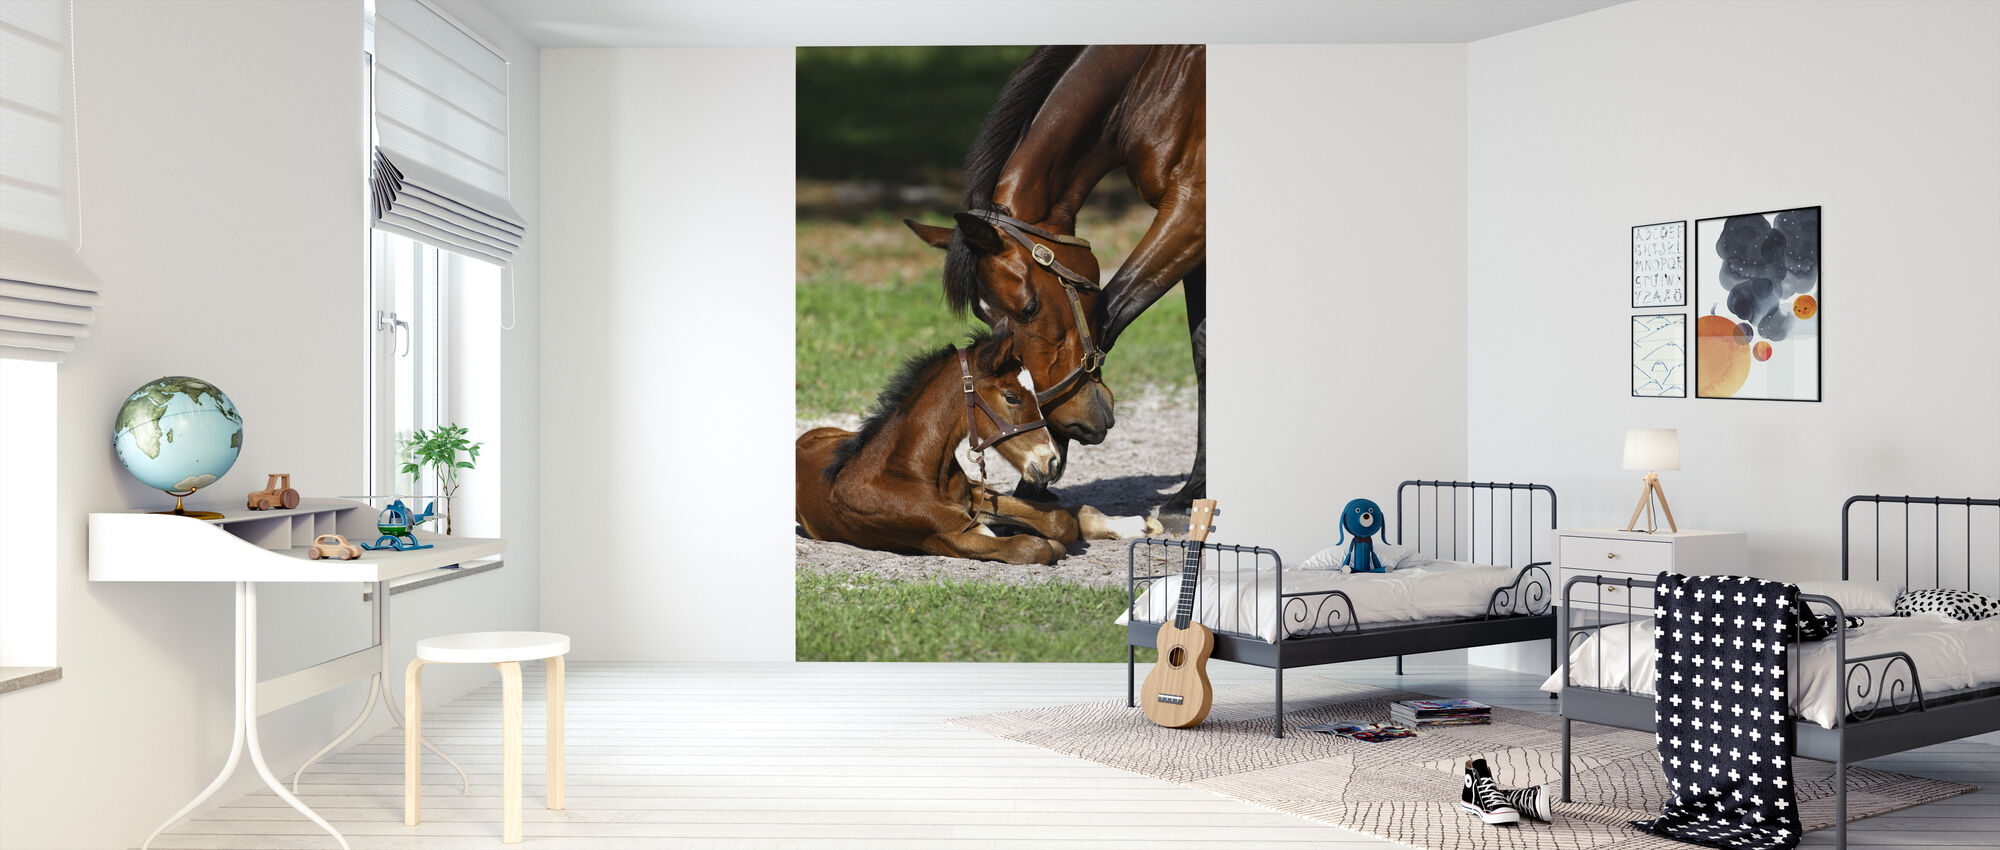 Thoroughbred Horses Cuddling - Wallpaper - Kids Room